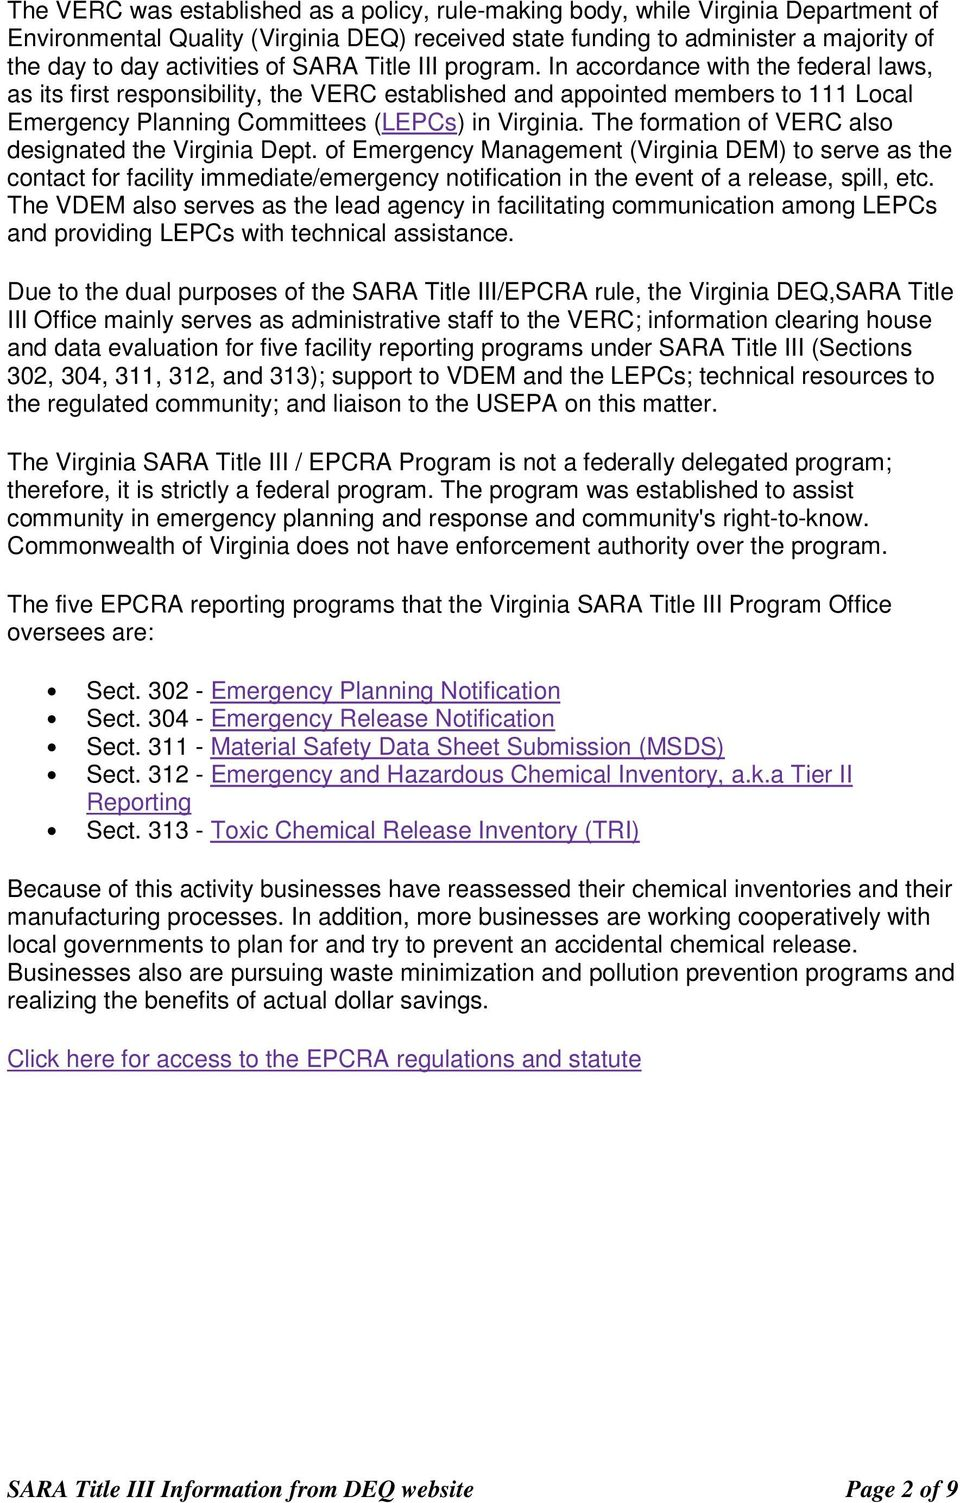 The formation of VERC also designated the Virginia Dept.